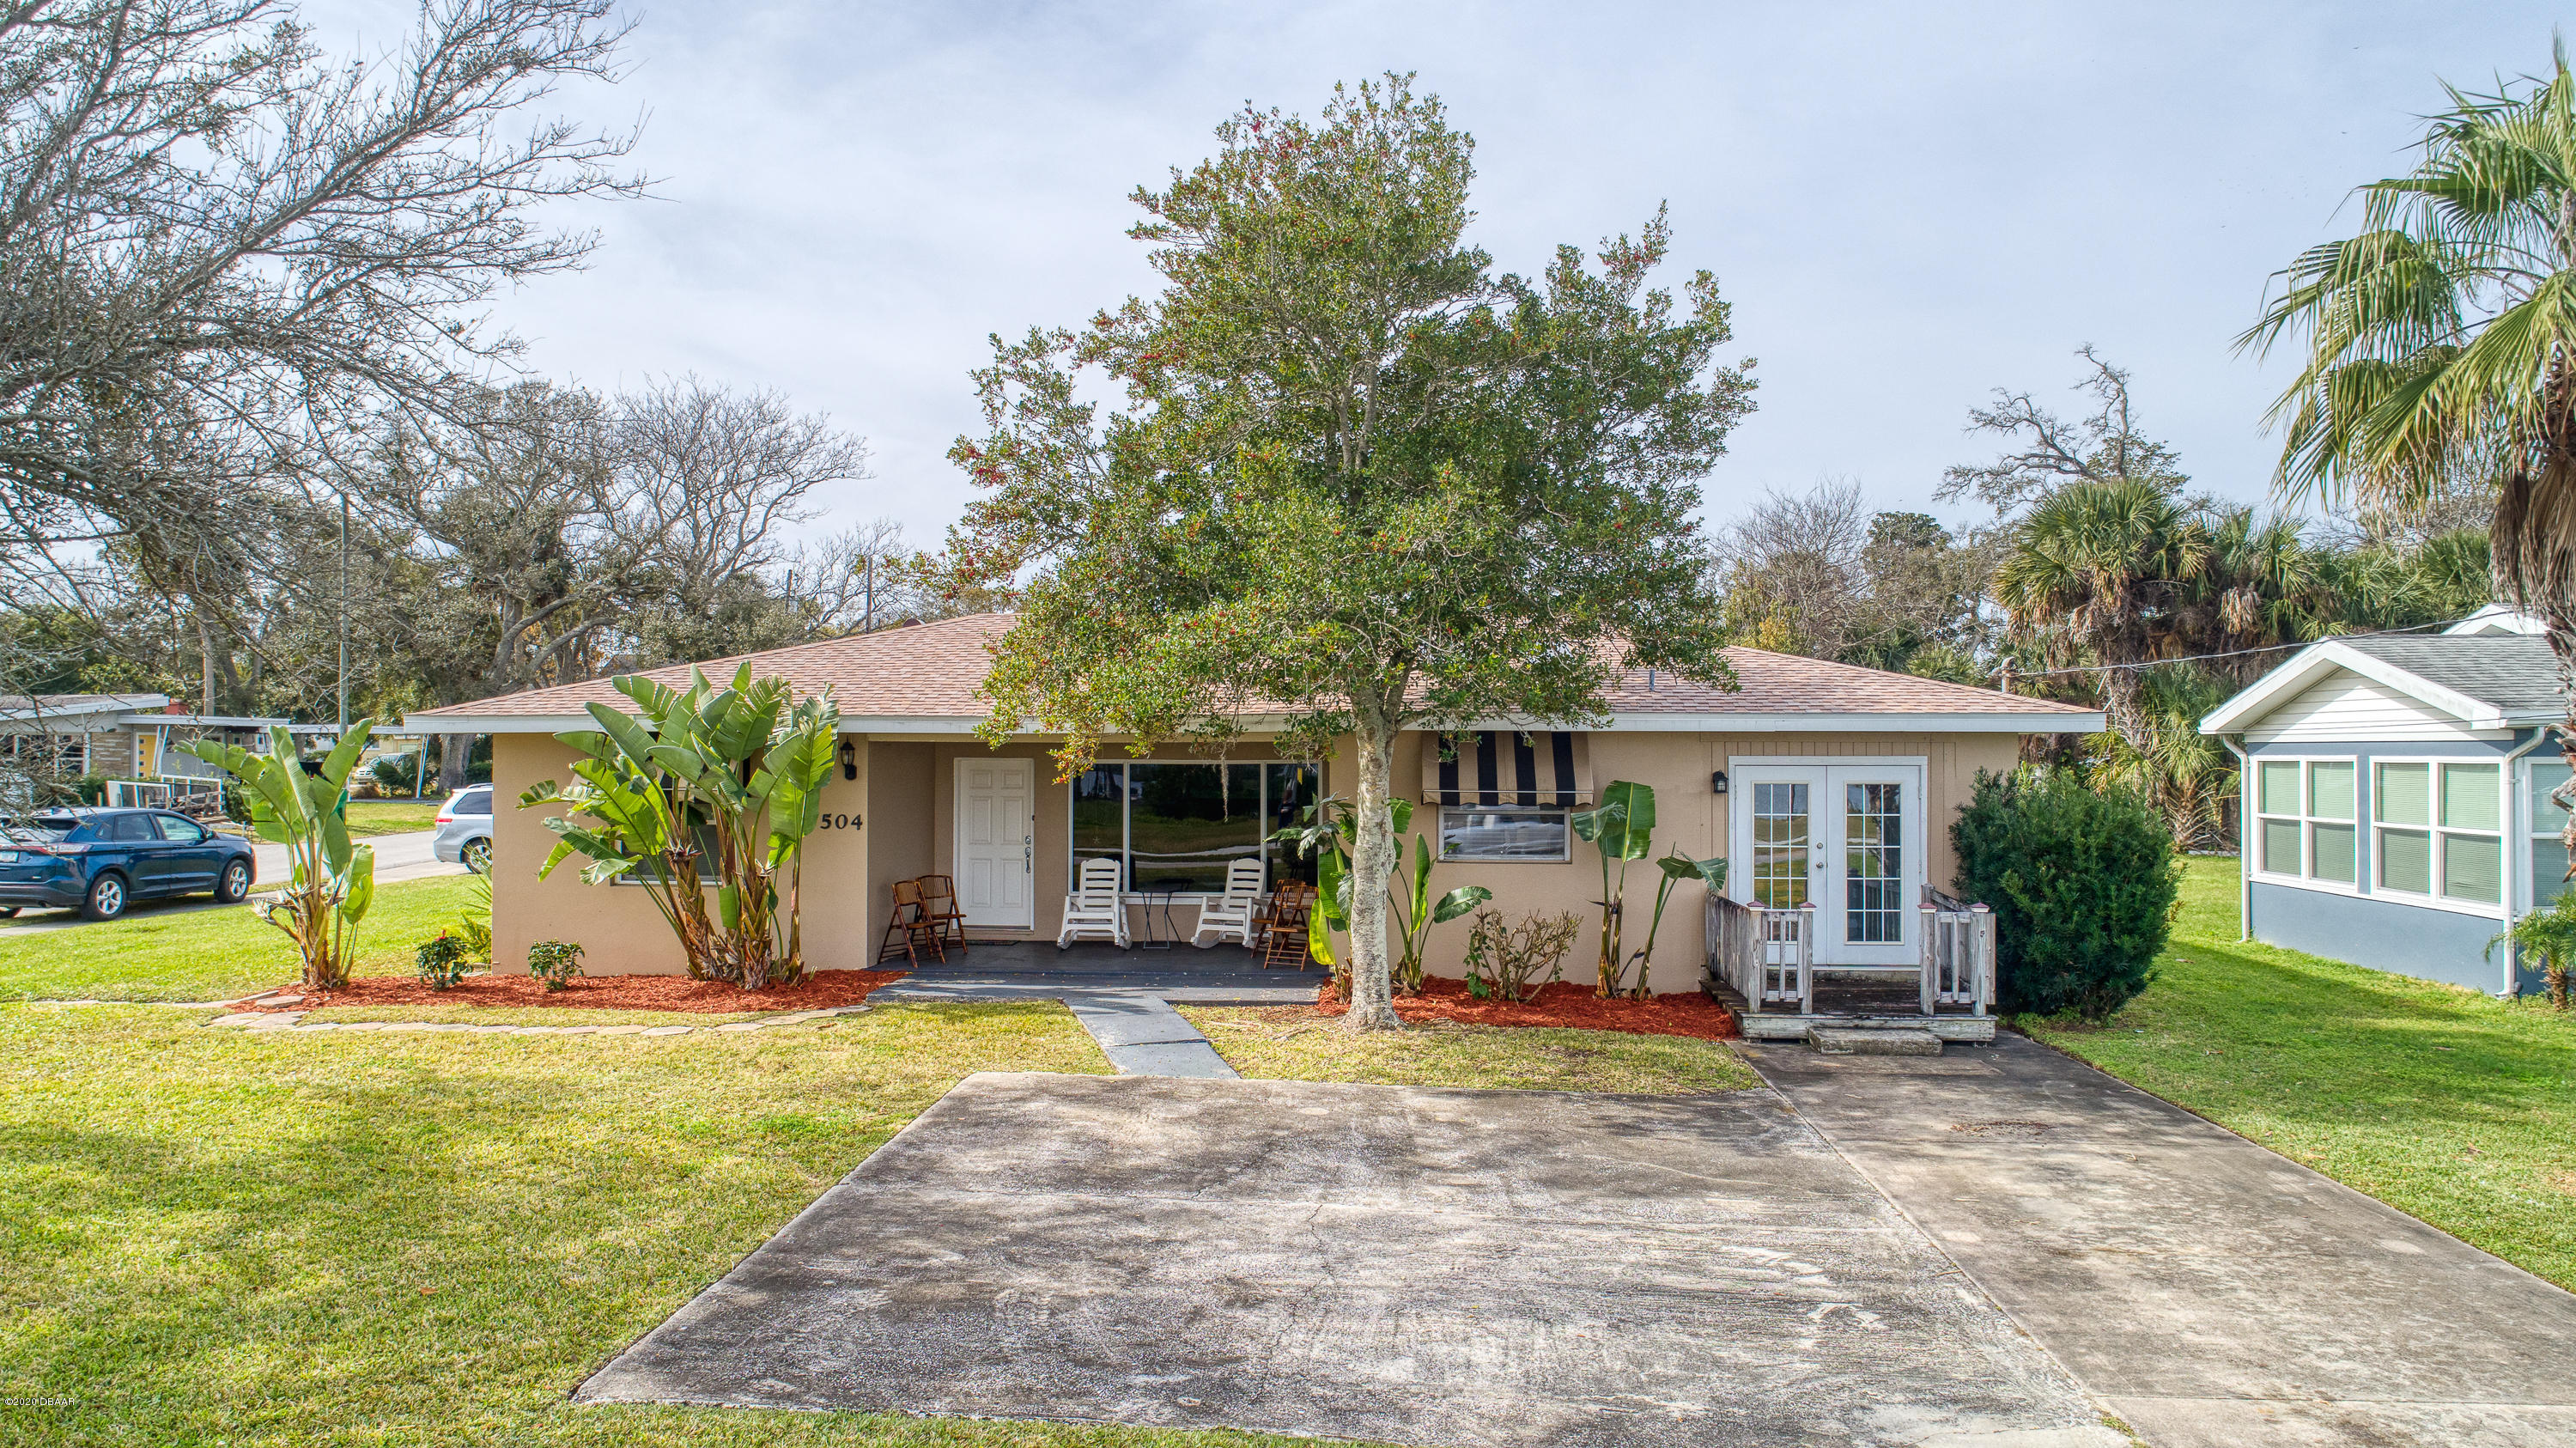 504 Riverside Drive, Holly Hill, Florida